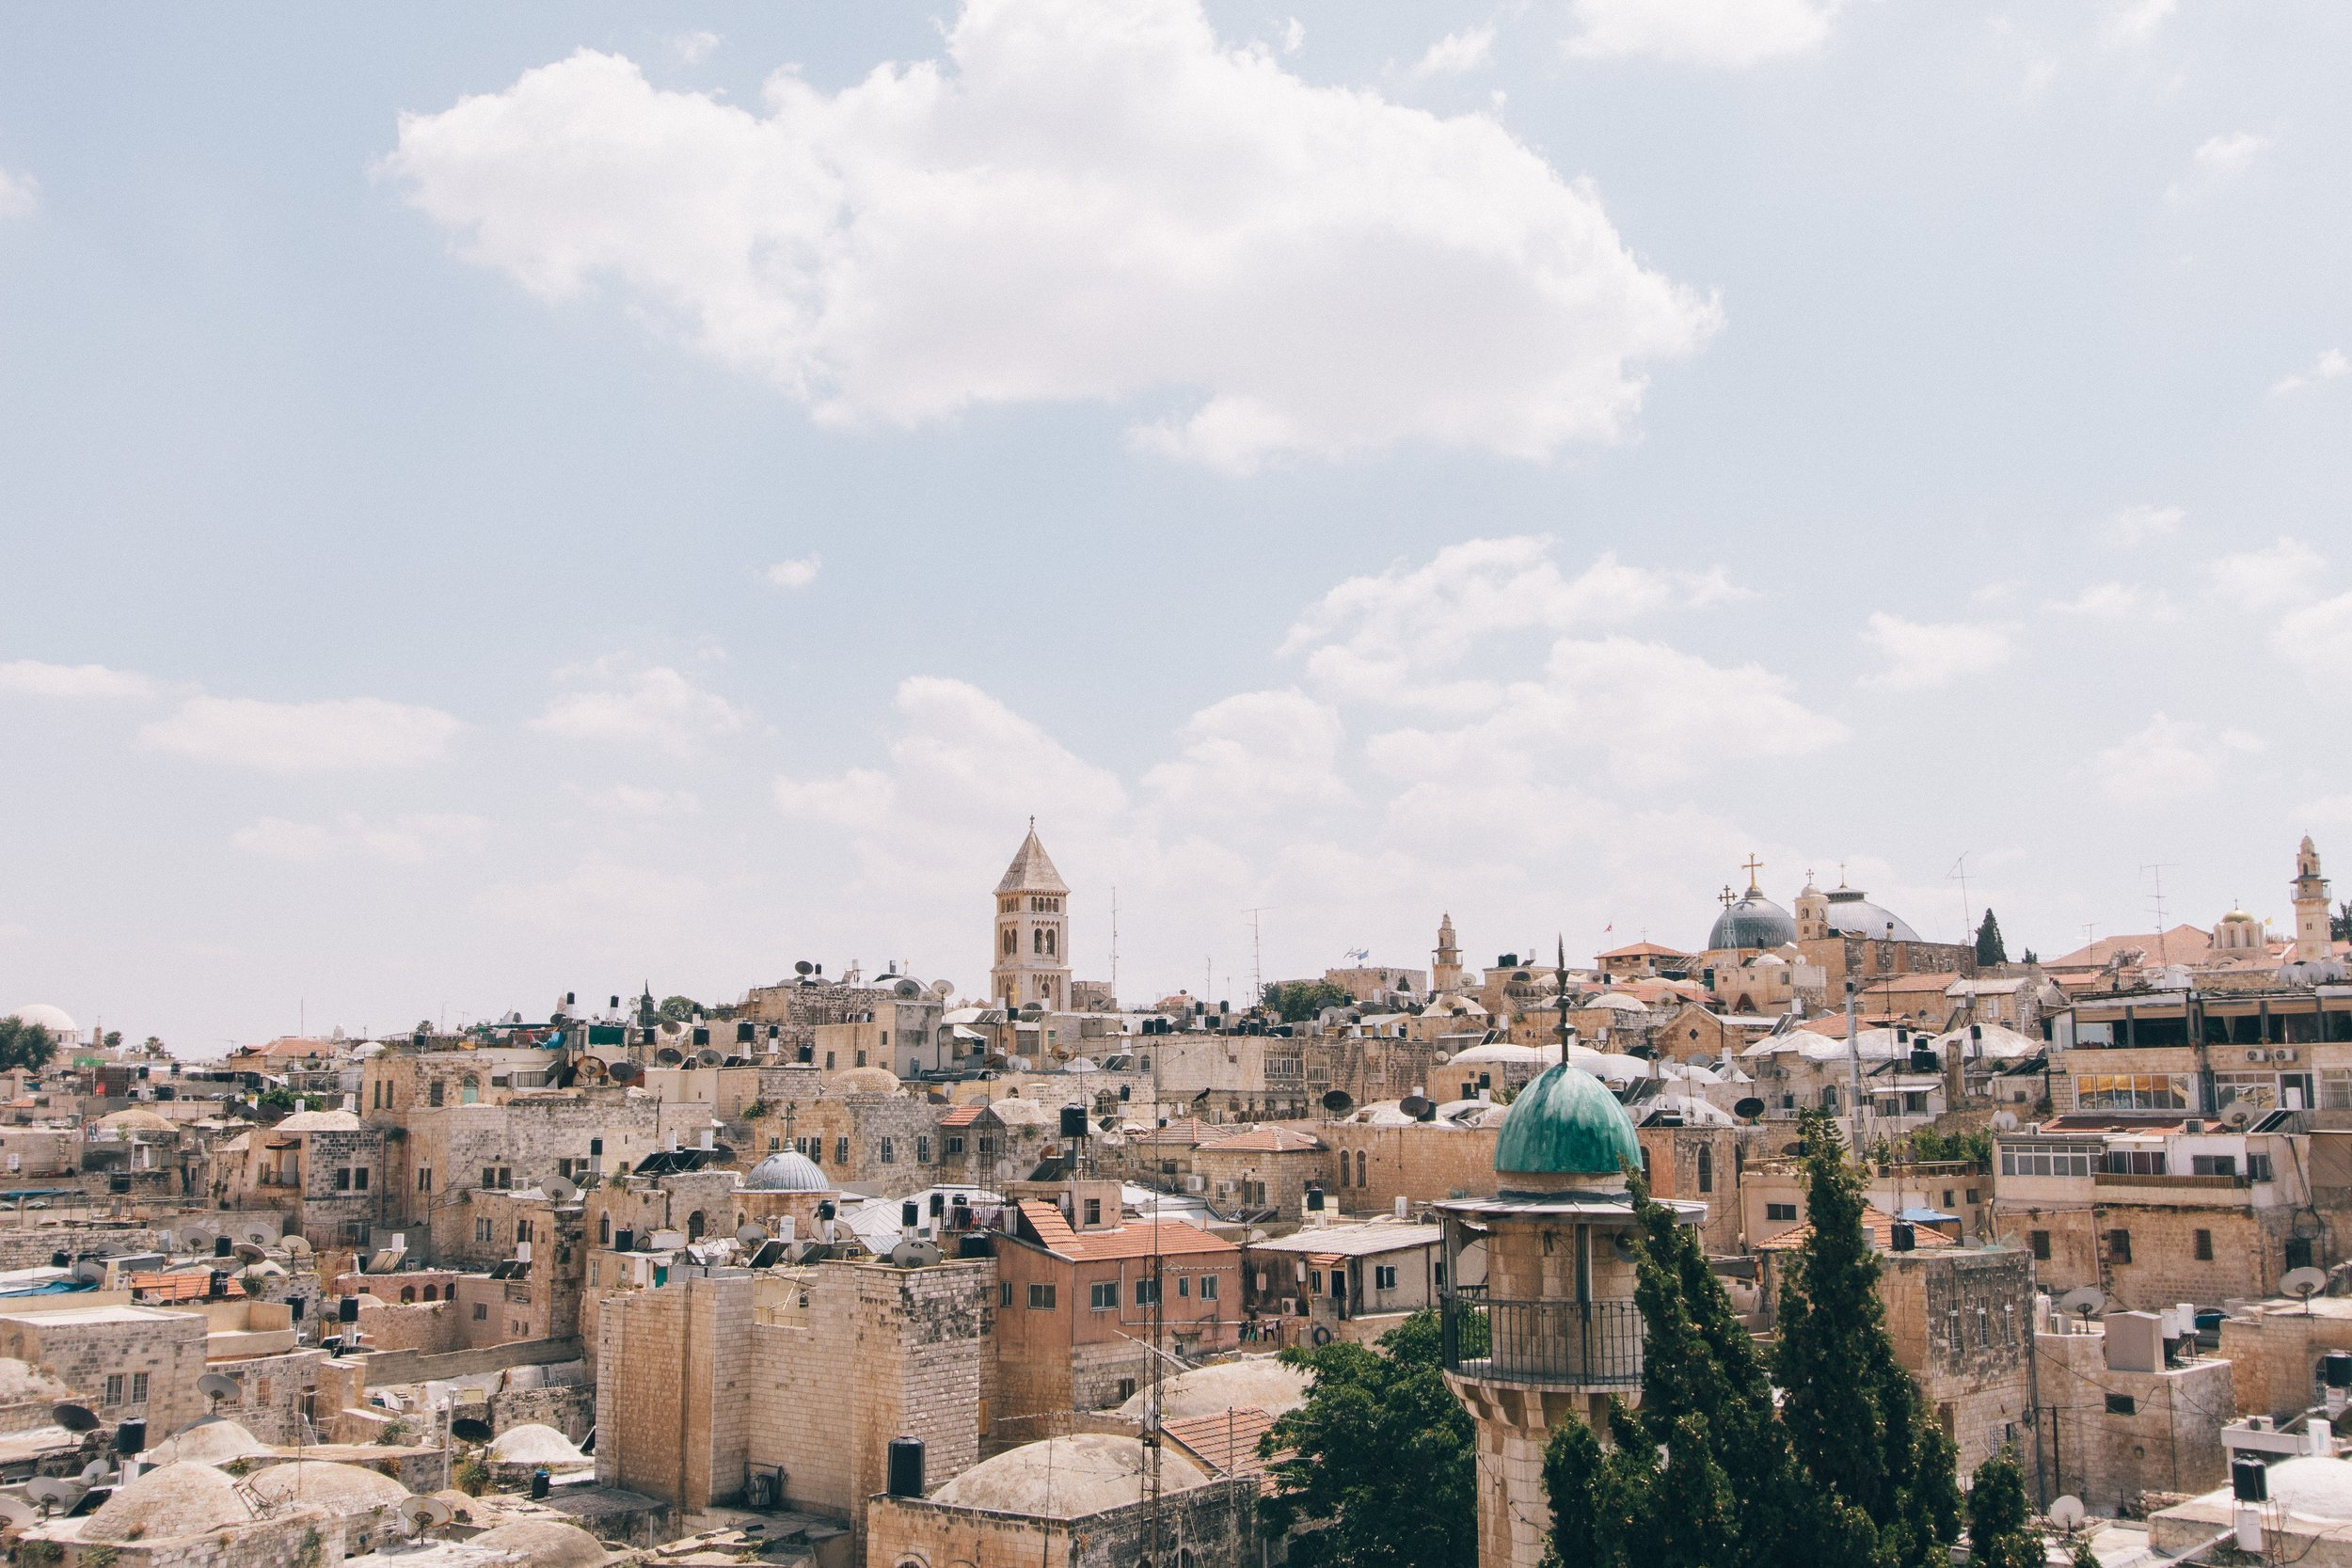 ISRAEL - JULY 19 - AUGUST 3 2019TRIP COST: $4,200DEPOSIT: $500 DUE OCTOBER 28, 2018MORE INFORMATION